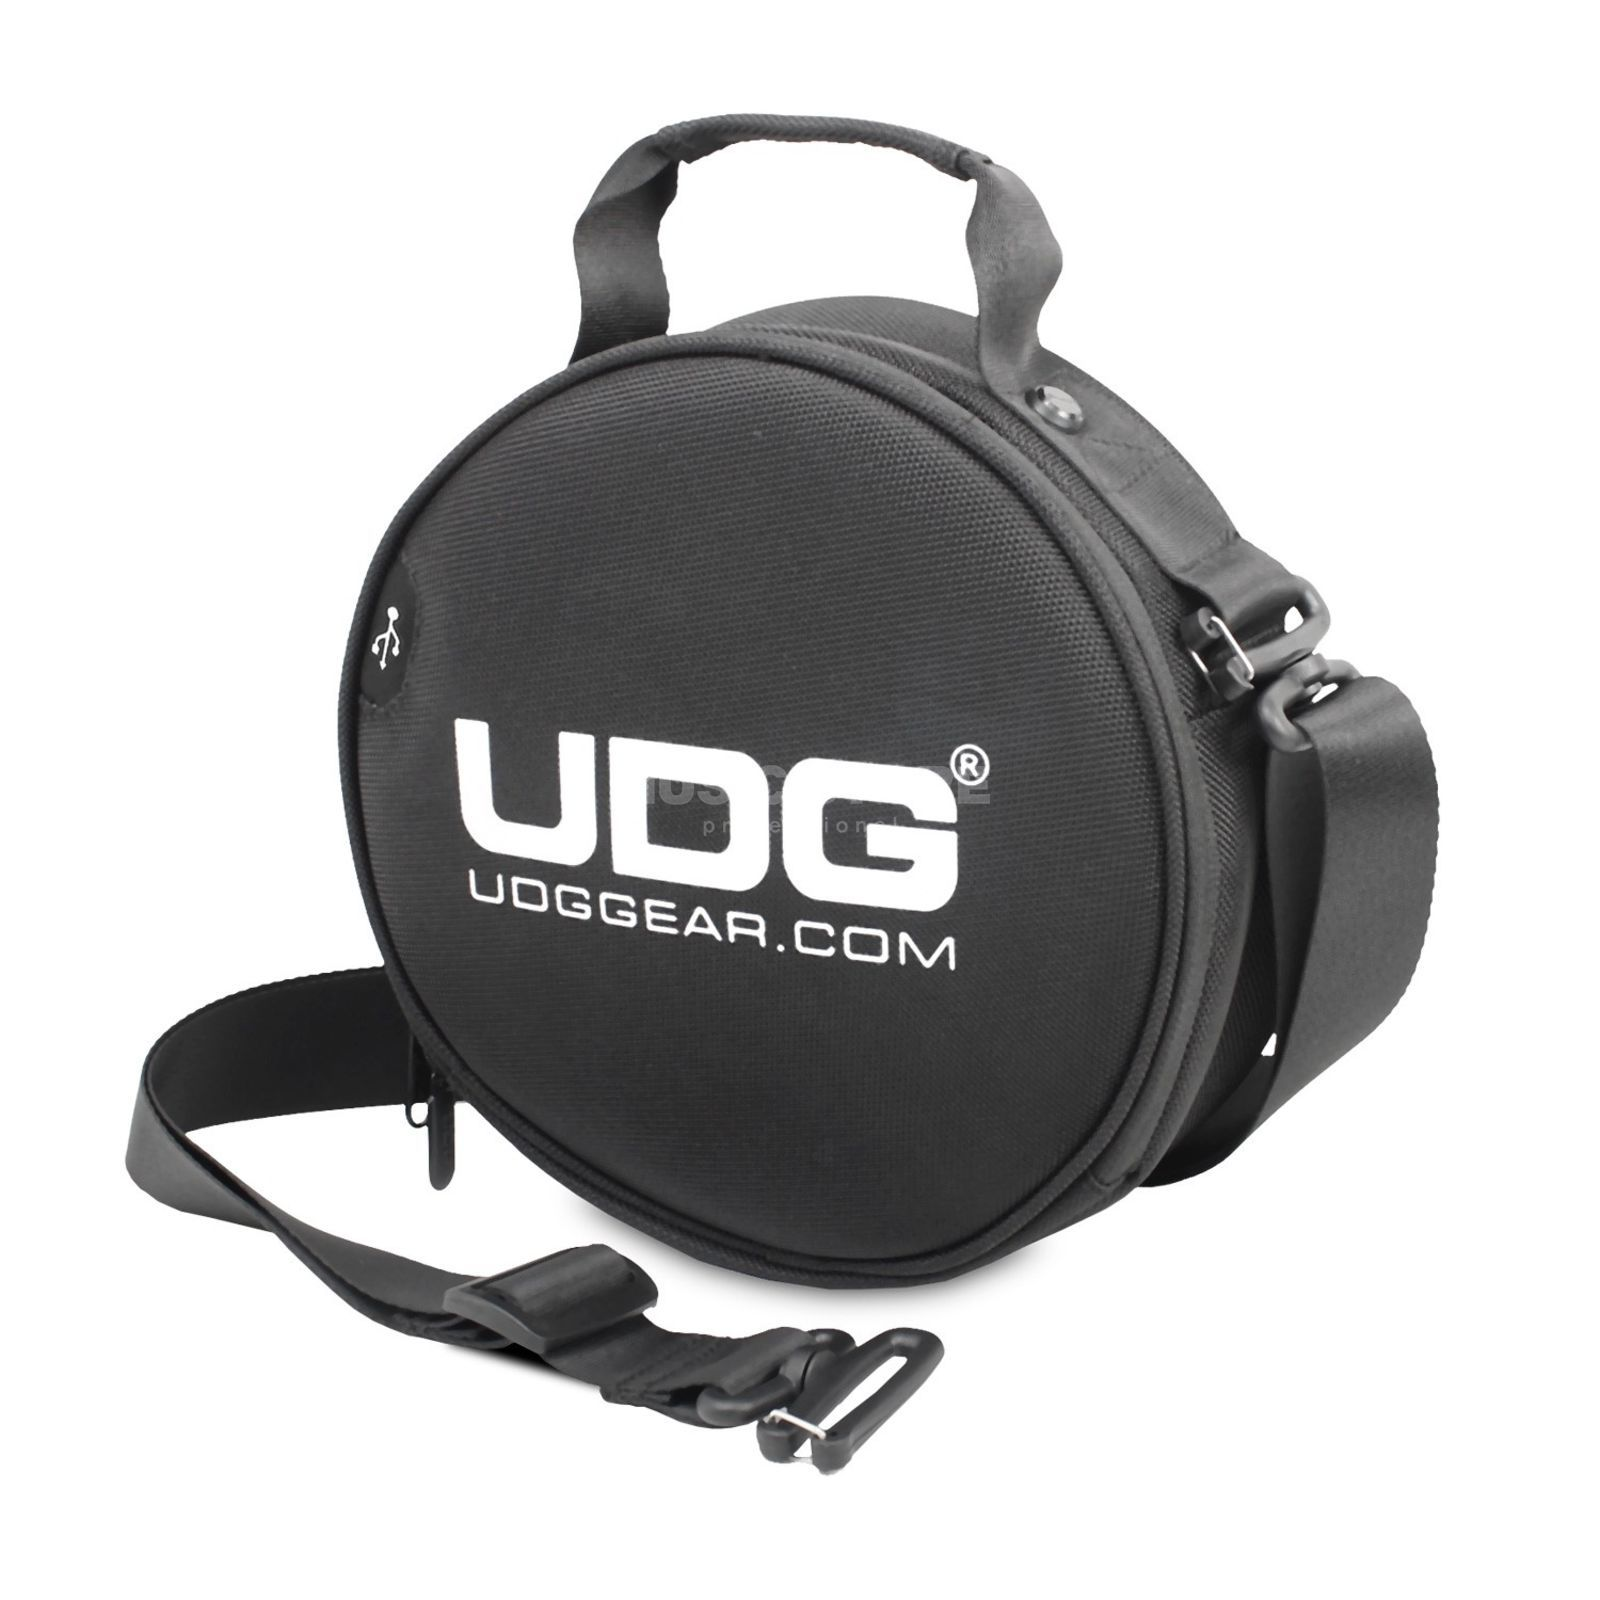 UDG Ultimate Digi Headphone Bag Black (U9950BL) Produktbillede